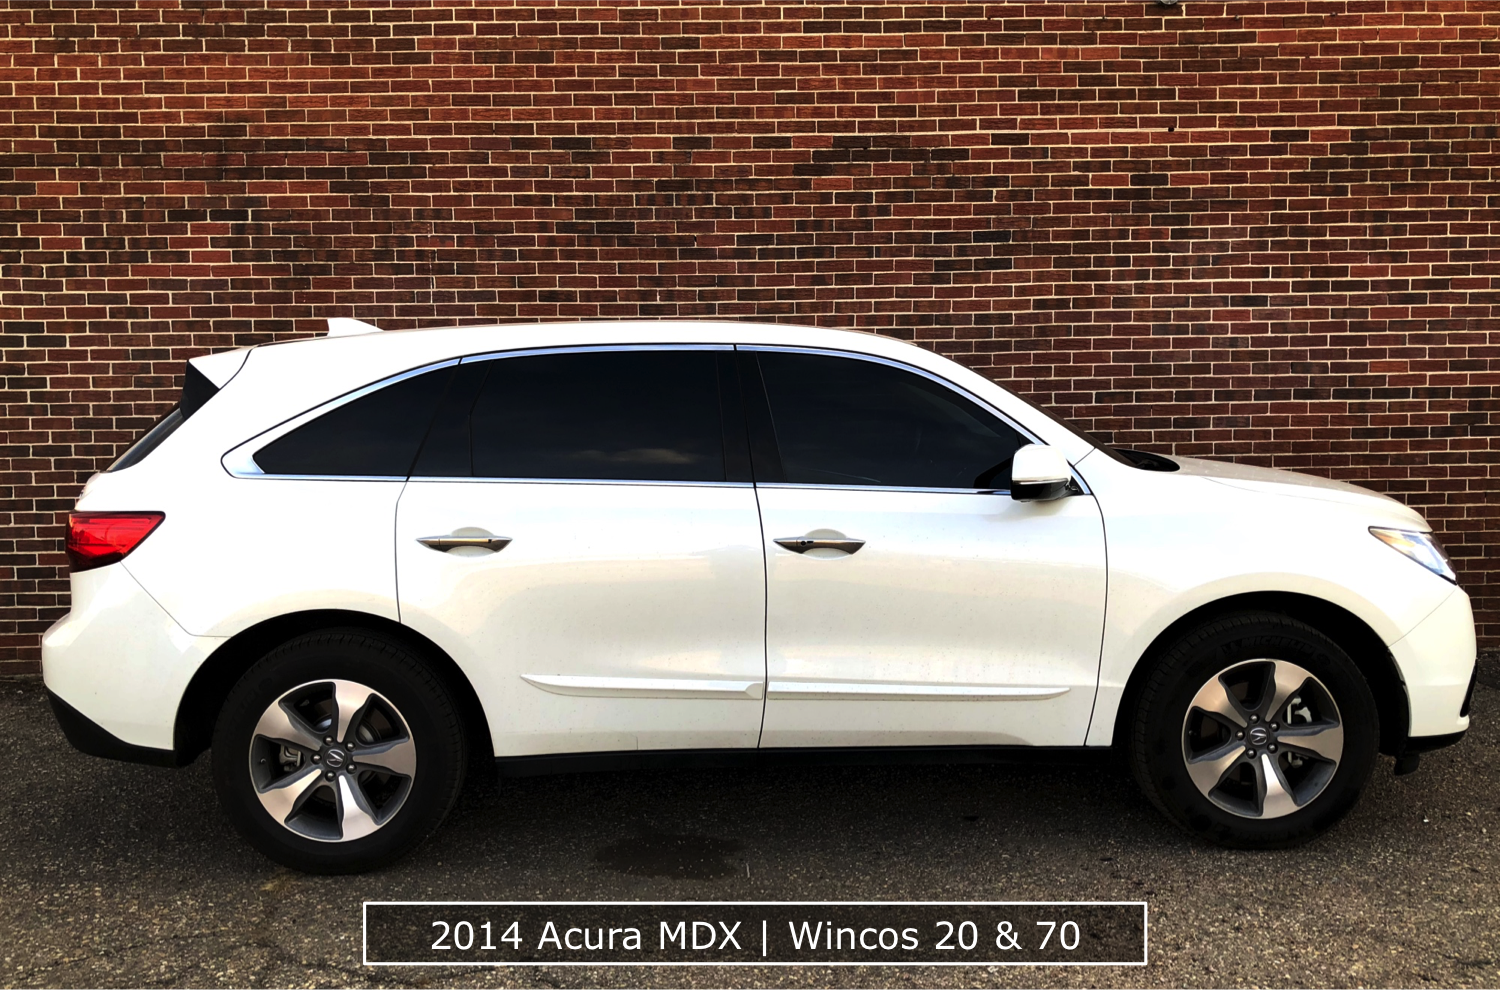 Acura Window Tinting MDX